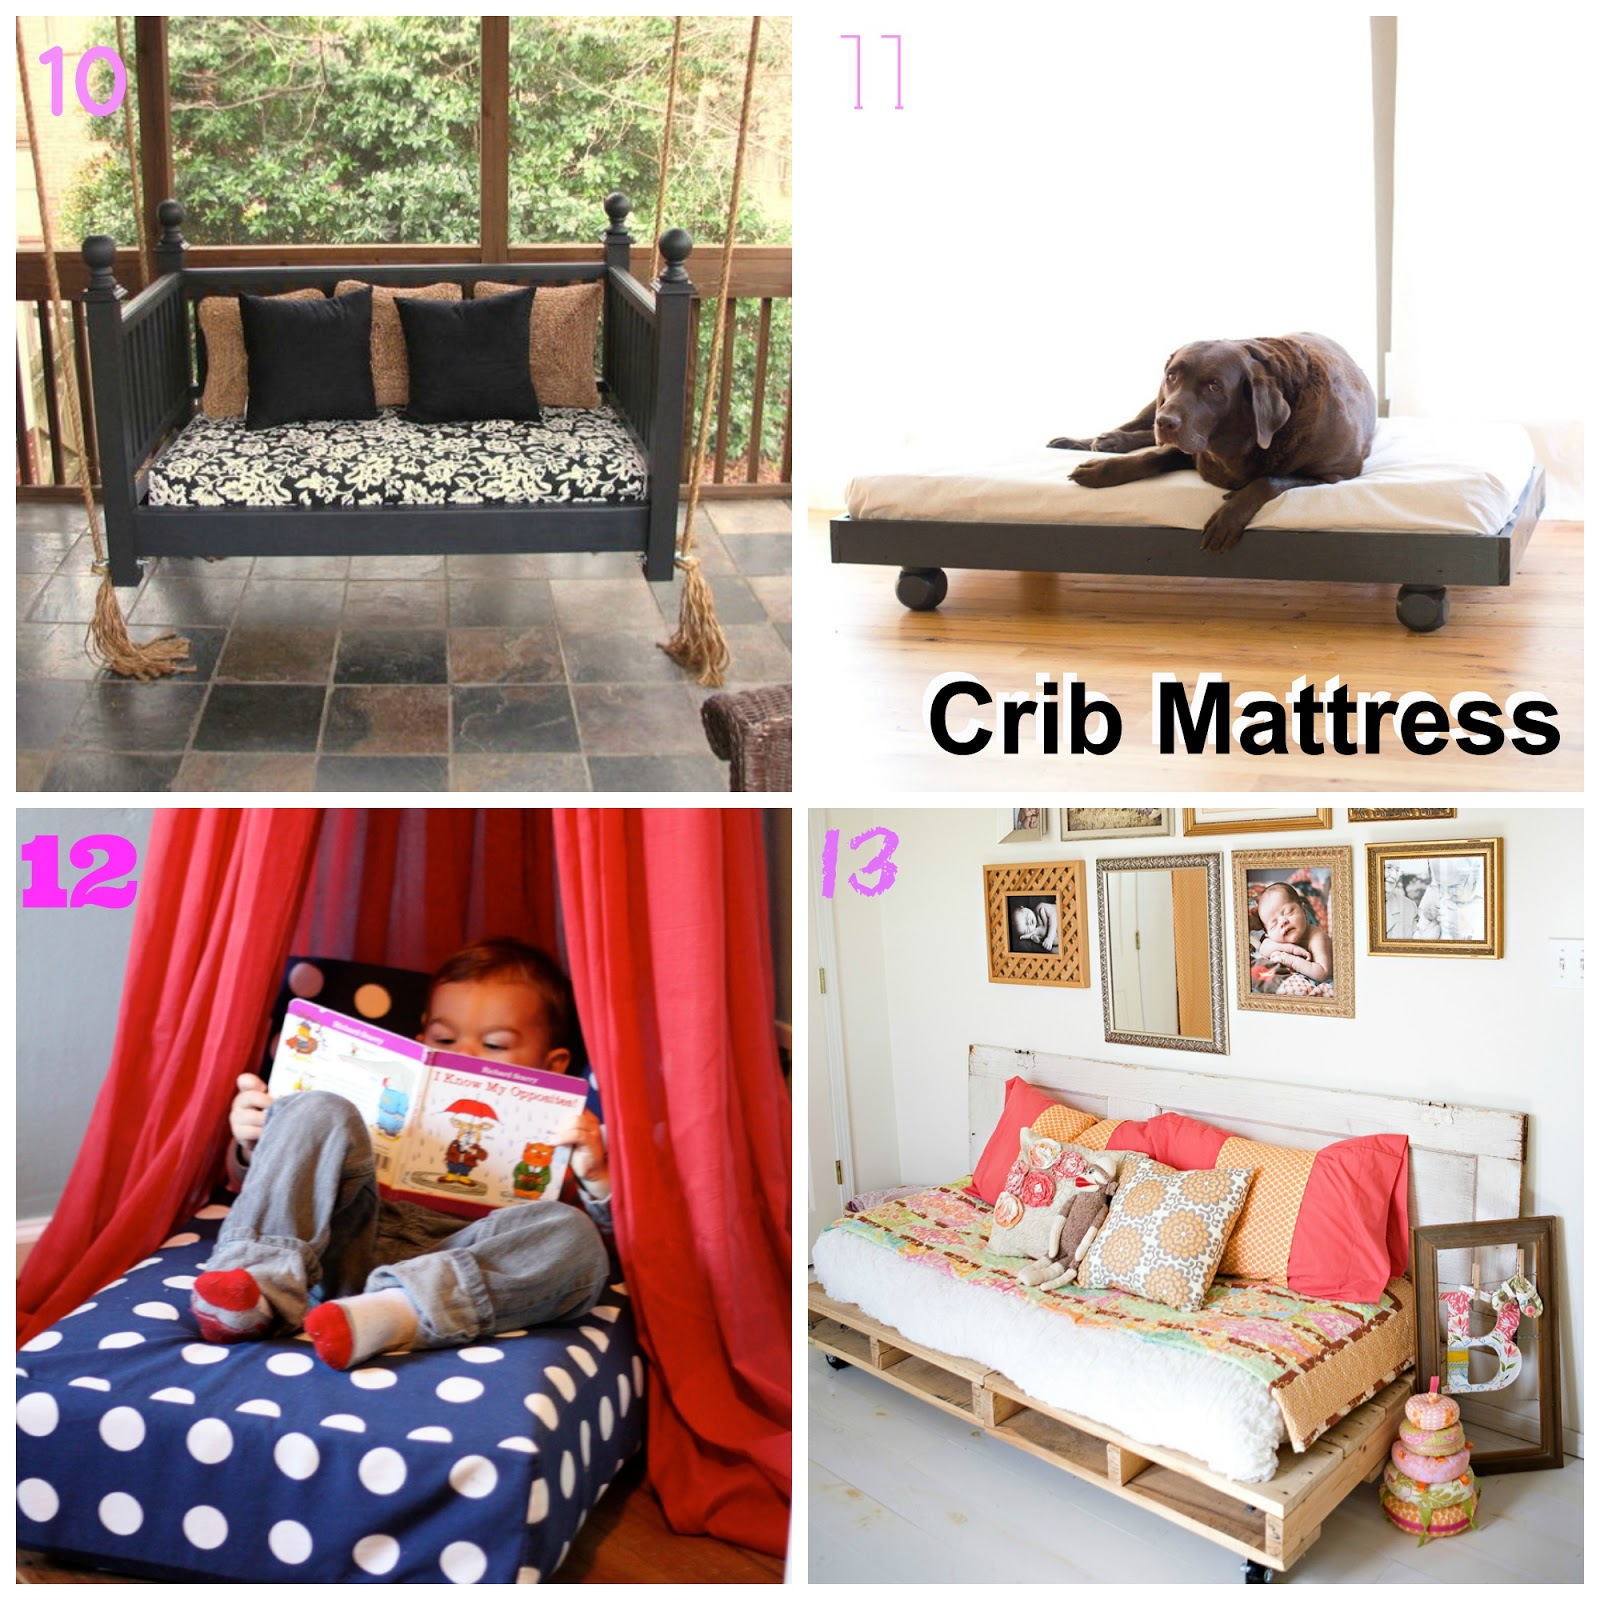 20 ways to upcycle a crib. Black Bedroom Furniture Sets. Home Design Ideas